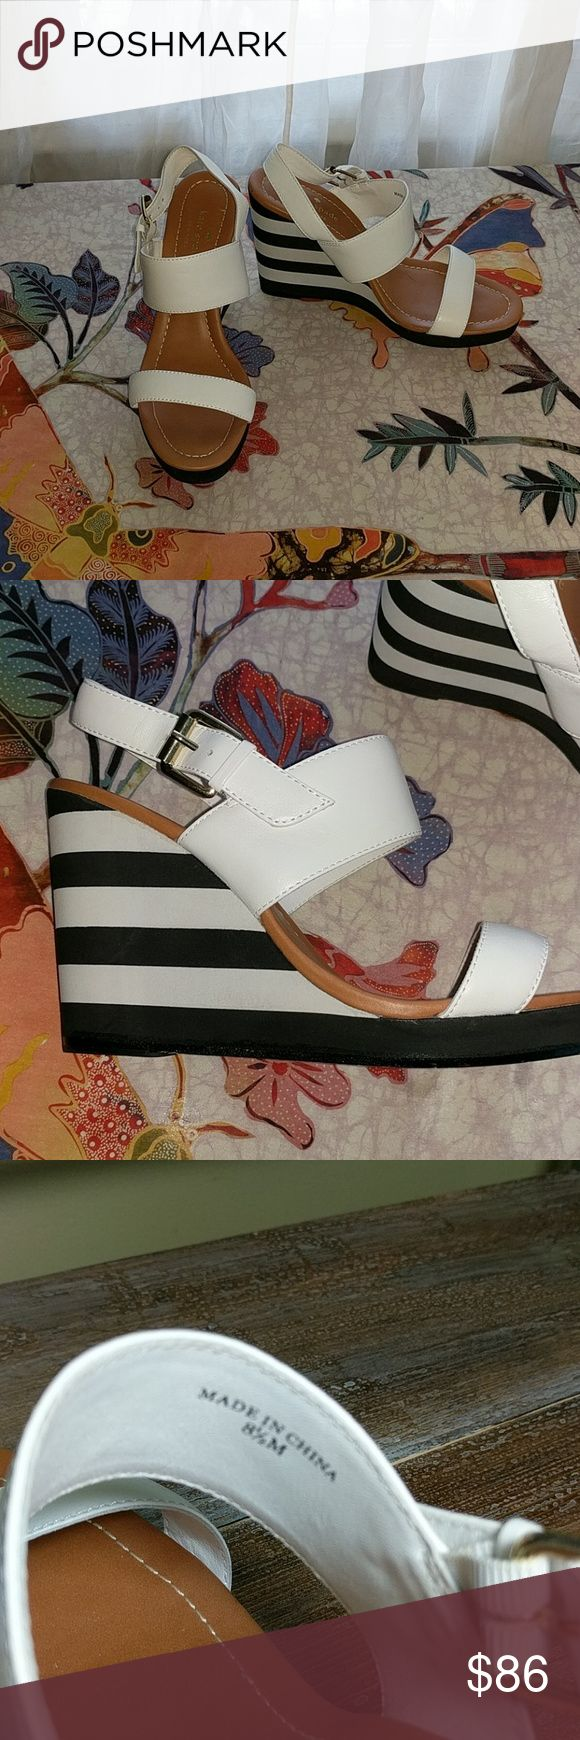 """kate spade Wedged Sandals White leather sandals,  black and white wedges, 4"""" high,  worn once kate spade Shoes Wedges"""